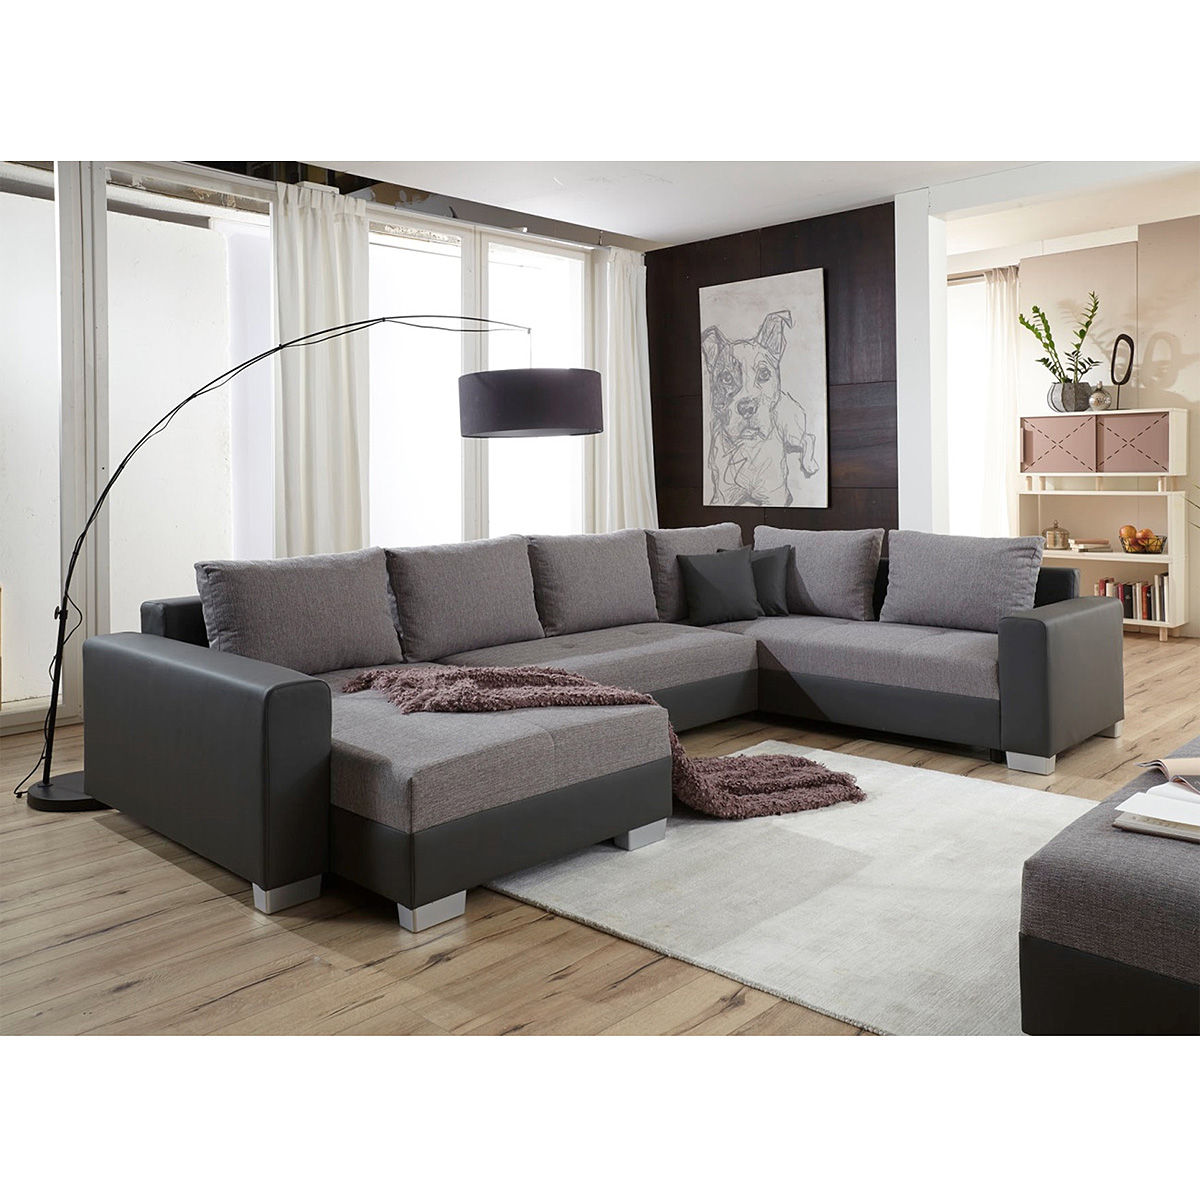 wohnlandschaft largas ecksofa sofa in schwarz und grau. Black Bedroom Furniture Sets. Home Design Ideas